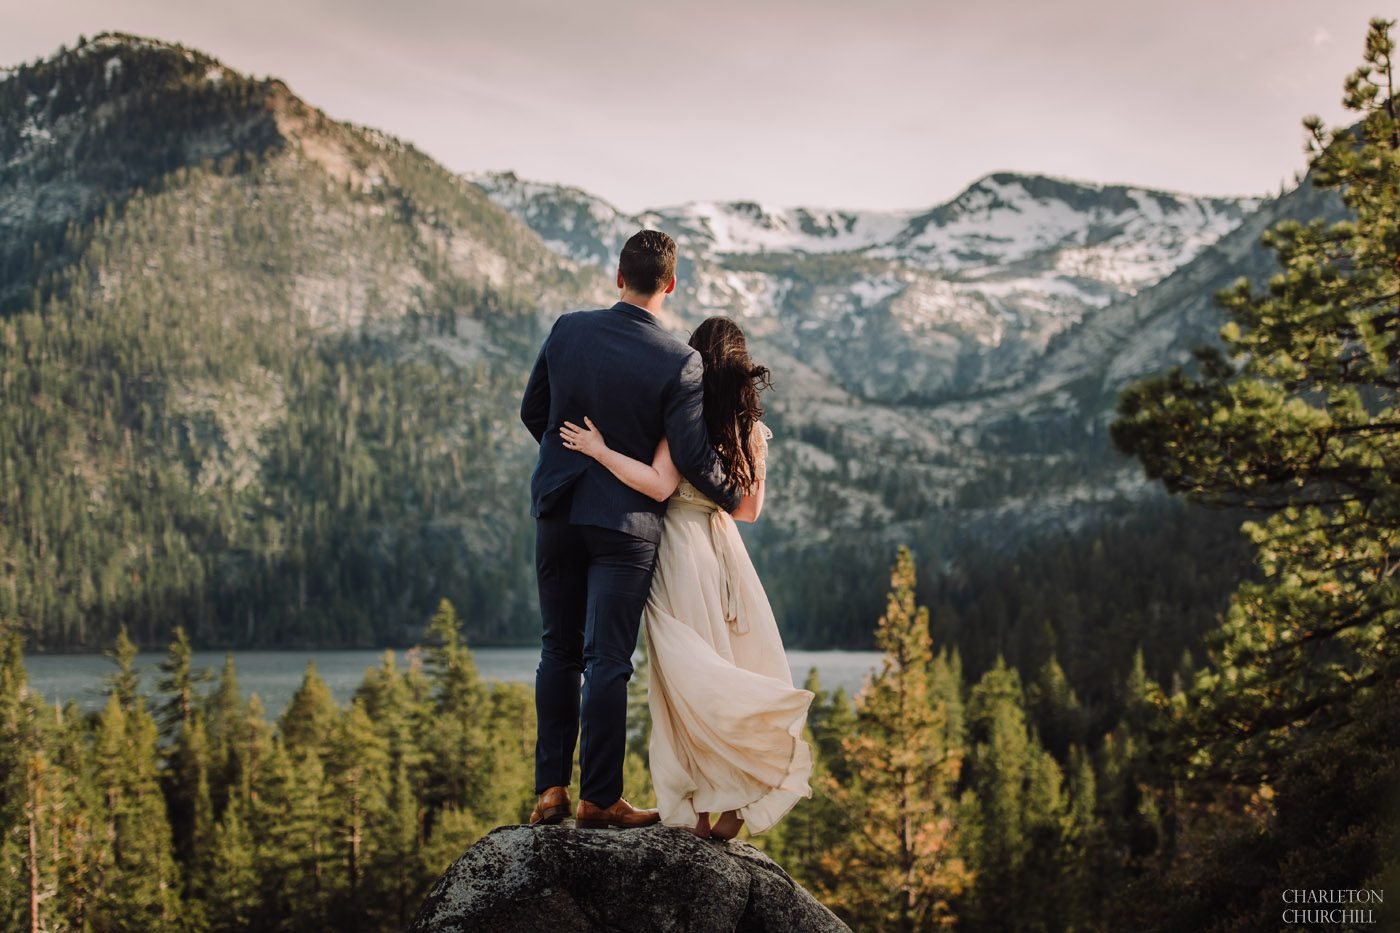 epic lake tahoe photo of wedding couple in the wind and the mountains overlooking the majestic beauty of the scenery and views